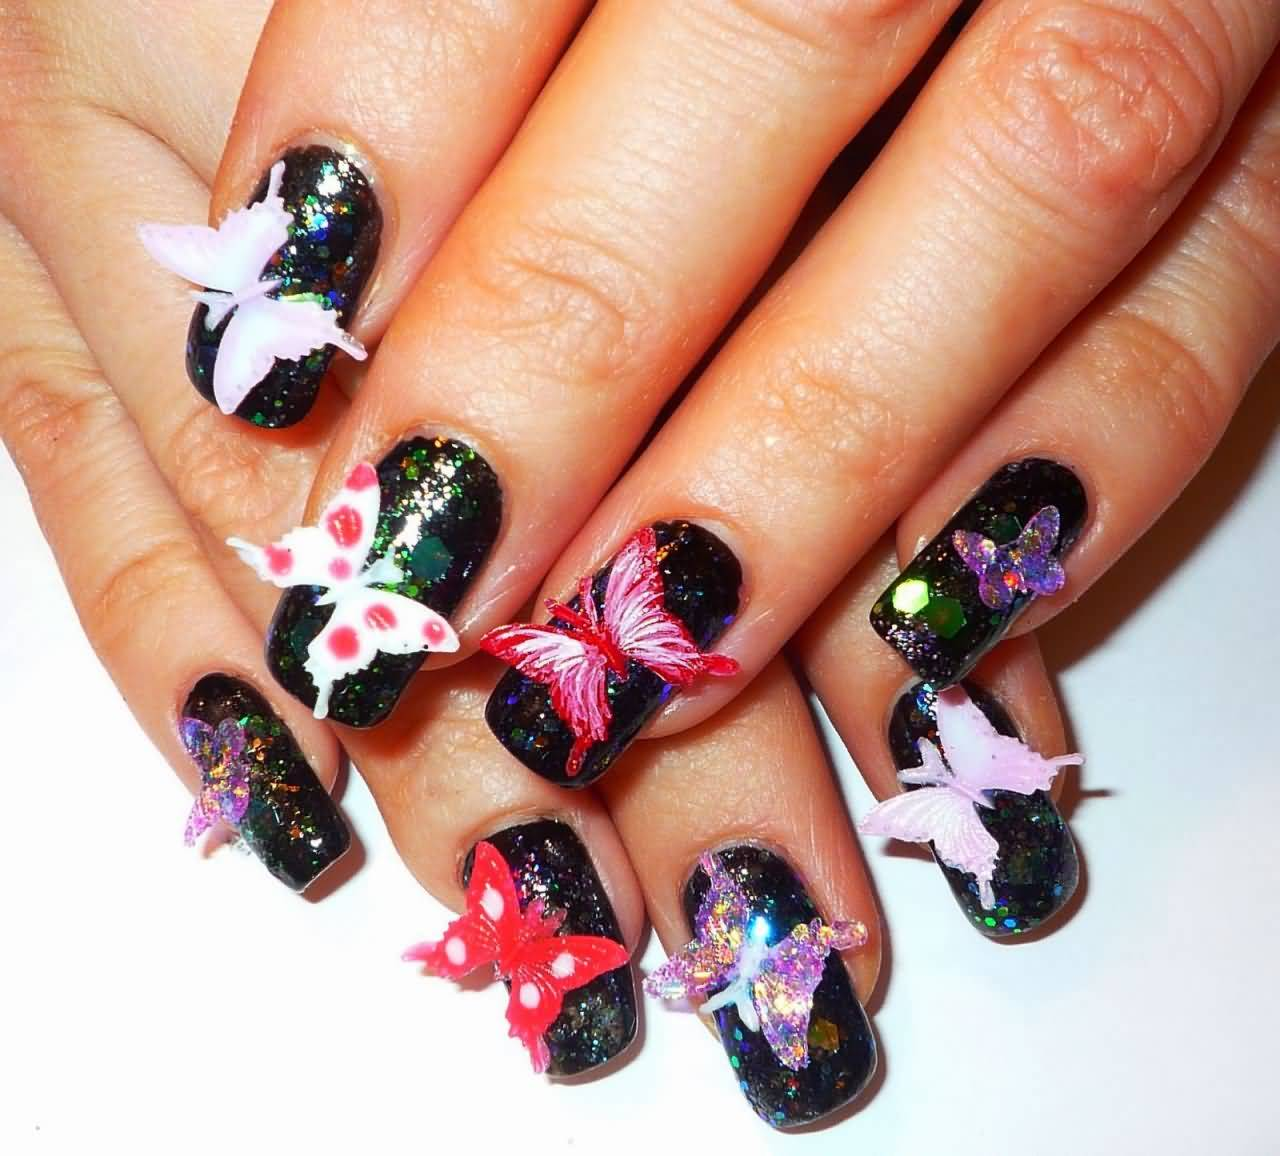 3d butterflies nail art design idea - Nail Art Designs Ideas